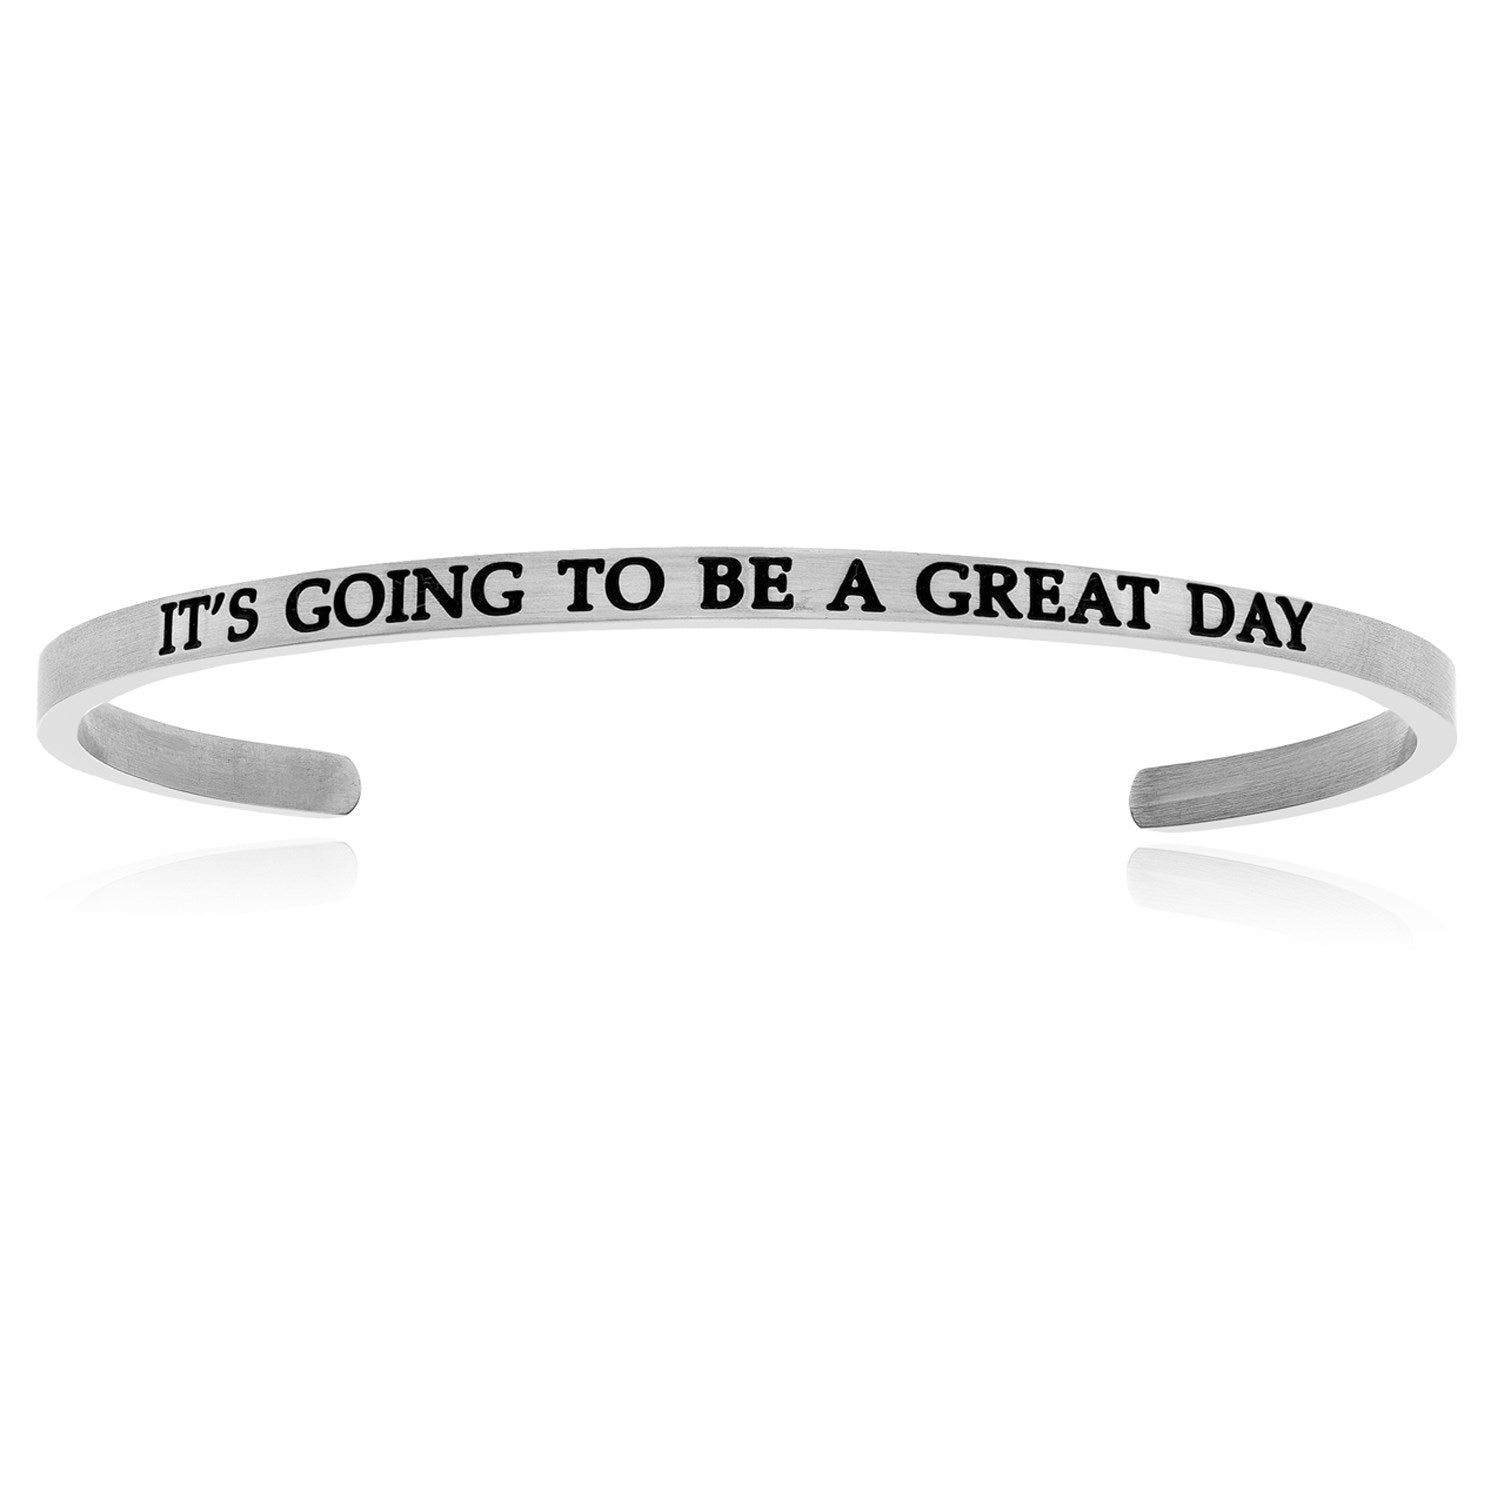 Stainless Steel It's Going To Be A Great Day Cuff Bracelet